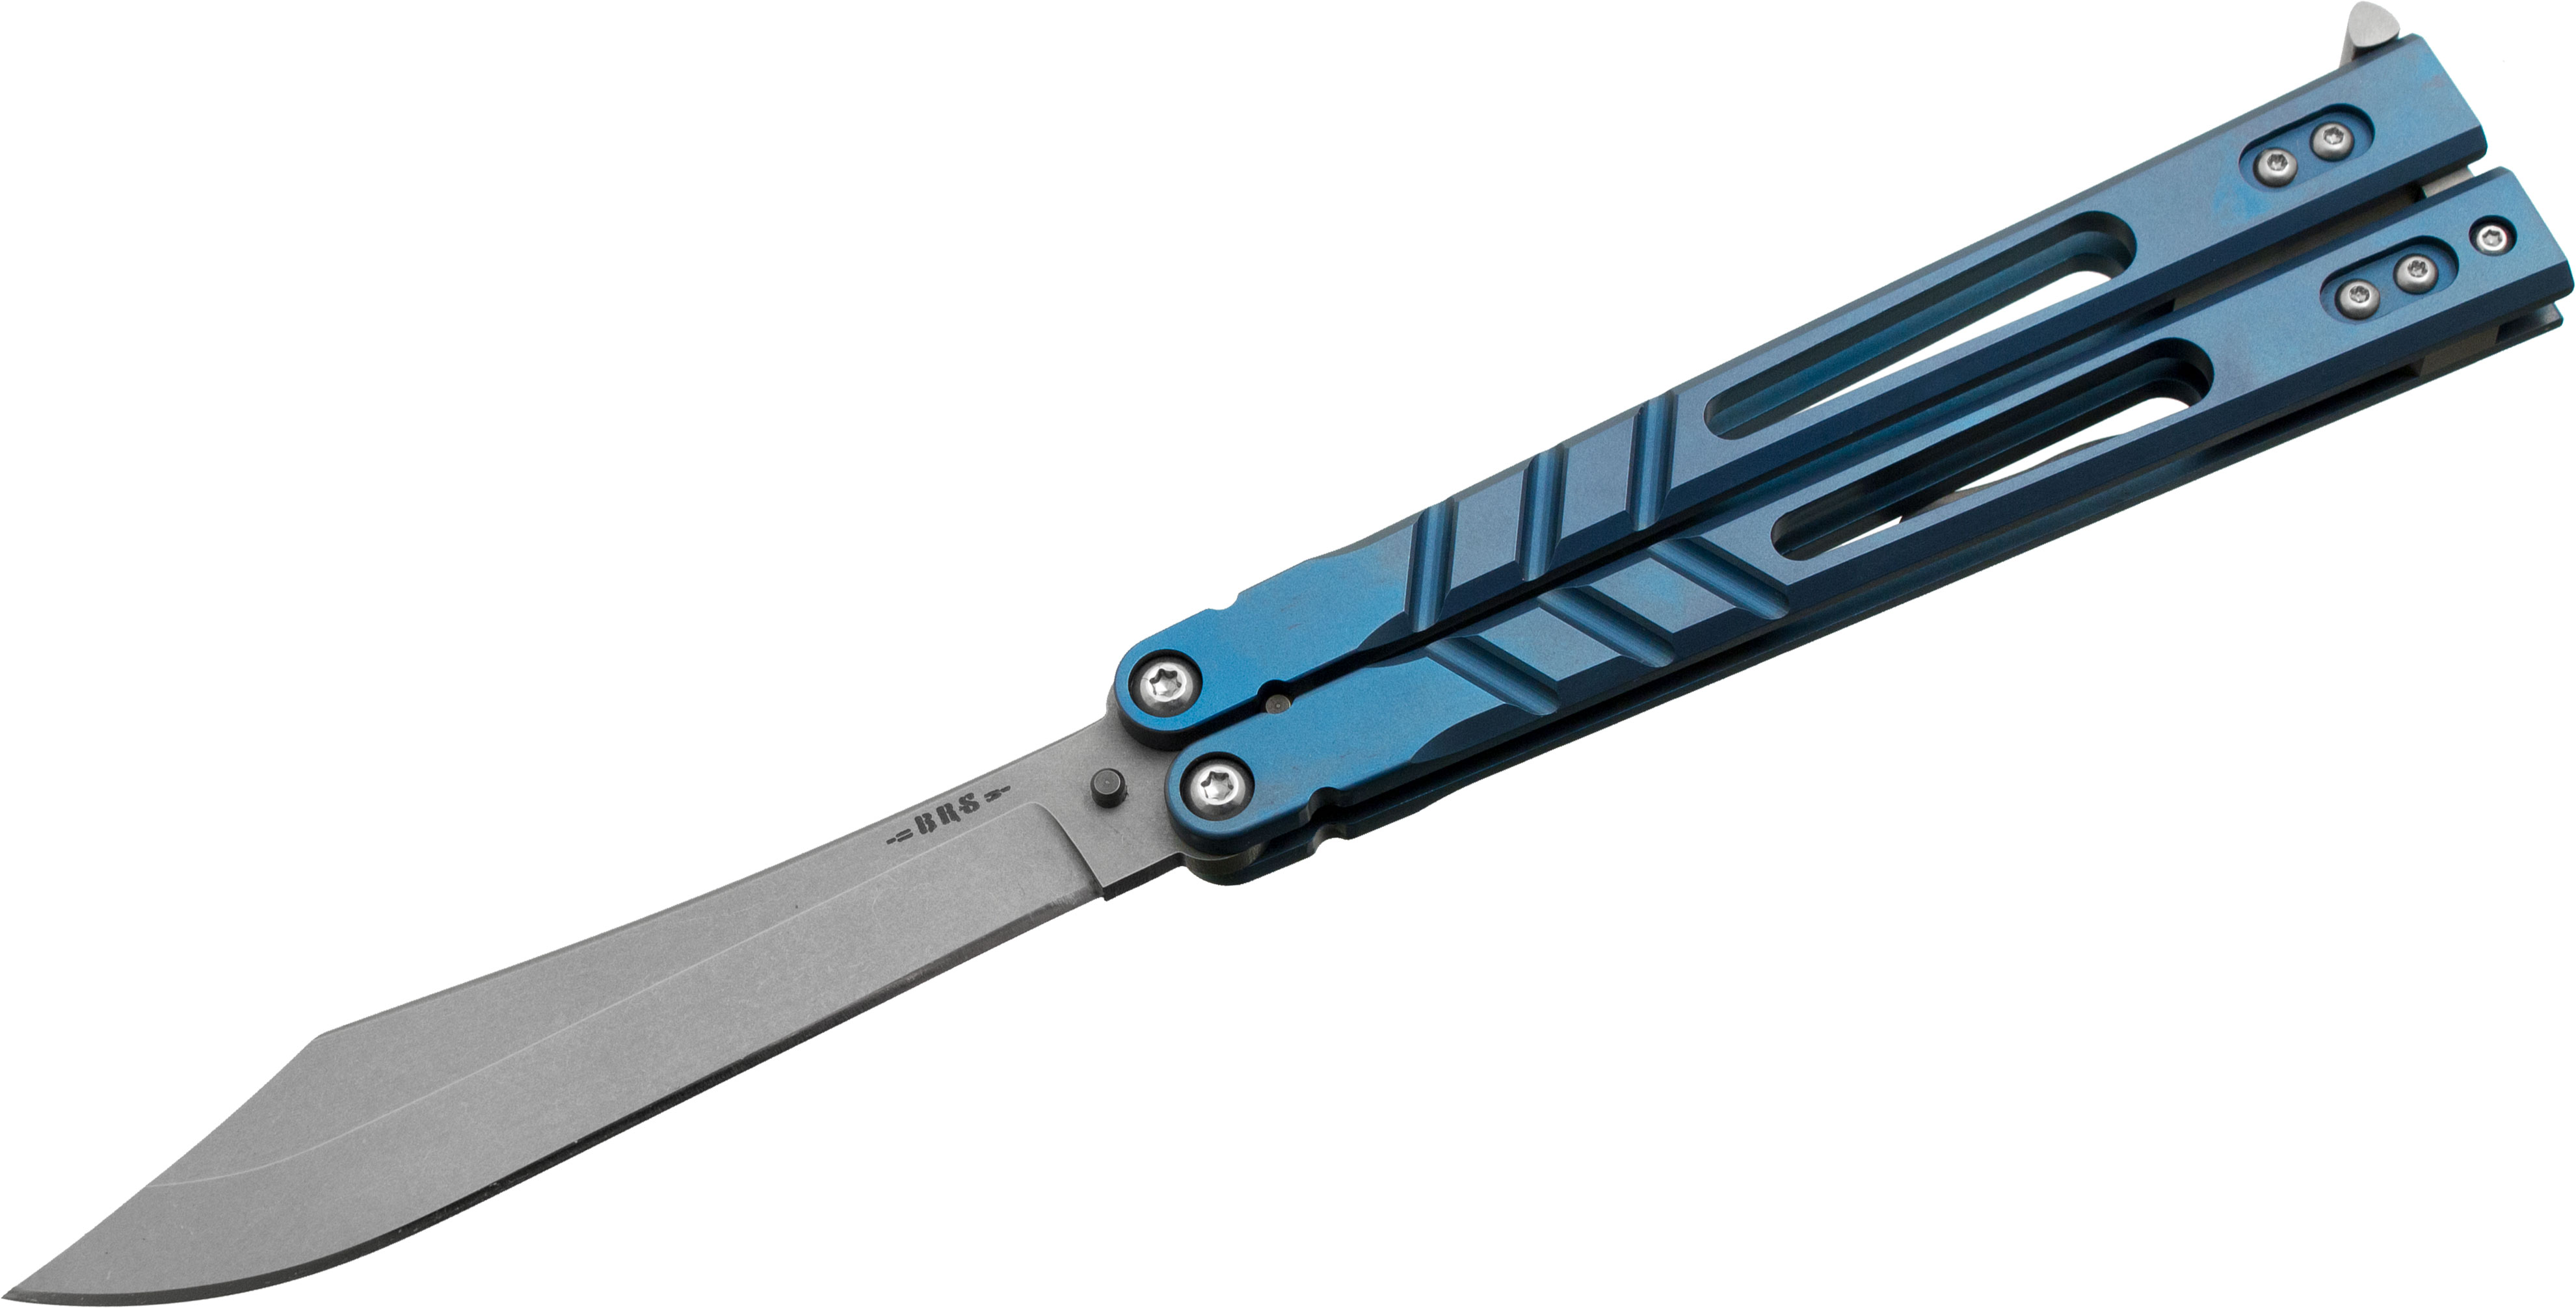 BRS Bladerunners Systems Premium Alpha Beast Balisong Butterfly 4.5 inch 154CM Clip Point Blade, Blue Anodized Titanium Handles